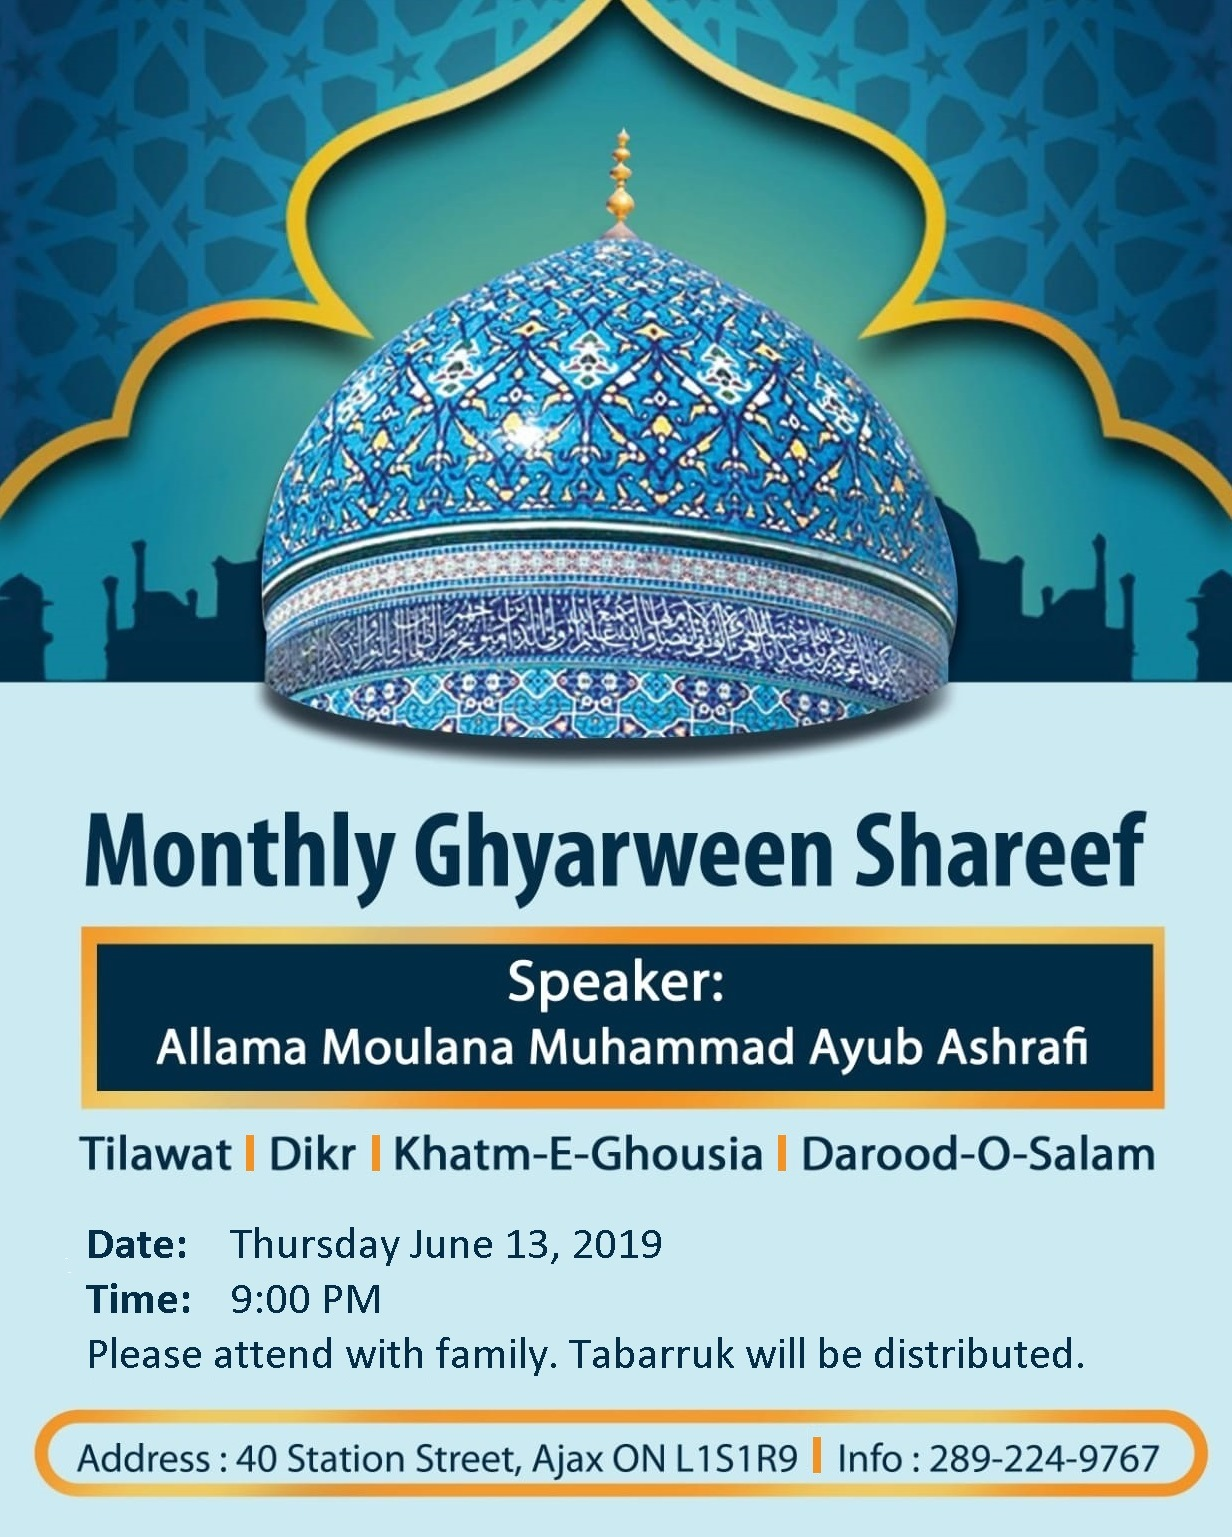 Monthly Ghyarween Shareef – Thursday June 13 @ 9:00 PM